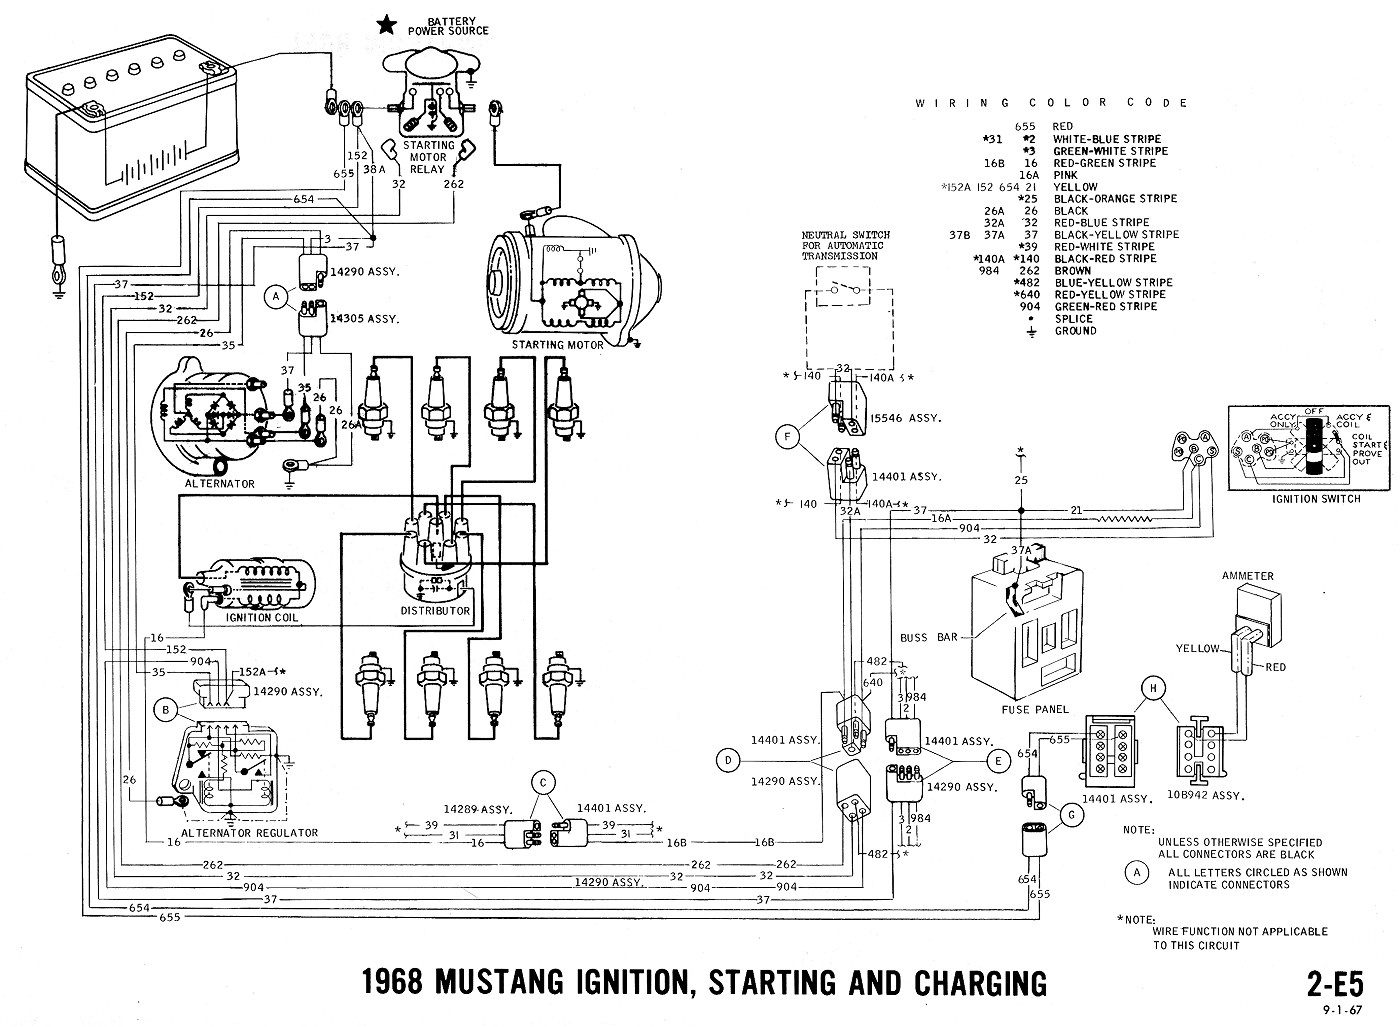 1965 mustang headlight wiring diagram wiring diagrams and schematics 1968 mustang wiring diagrams and vacuum schematics average joe